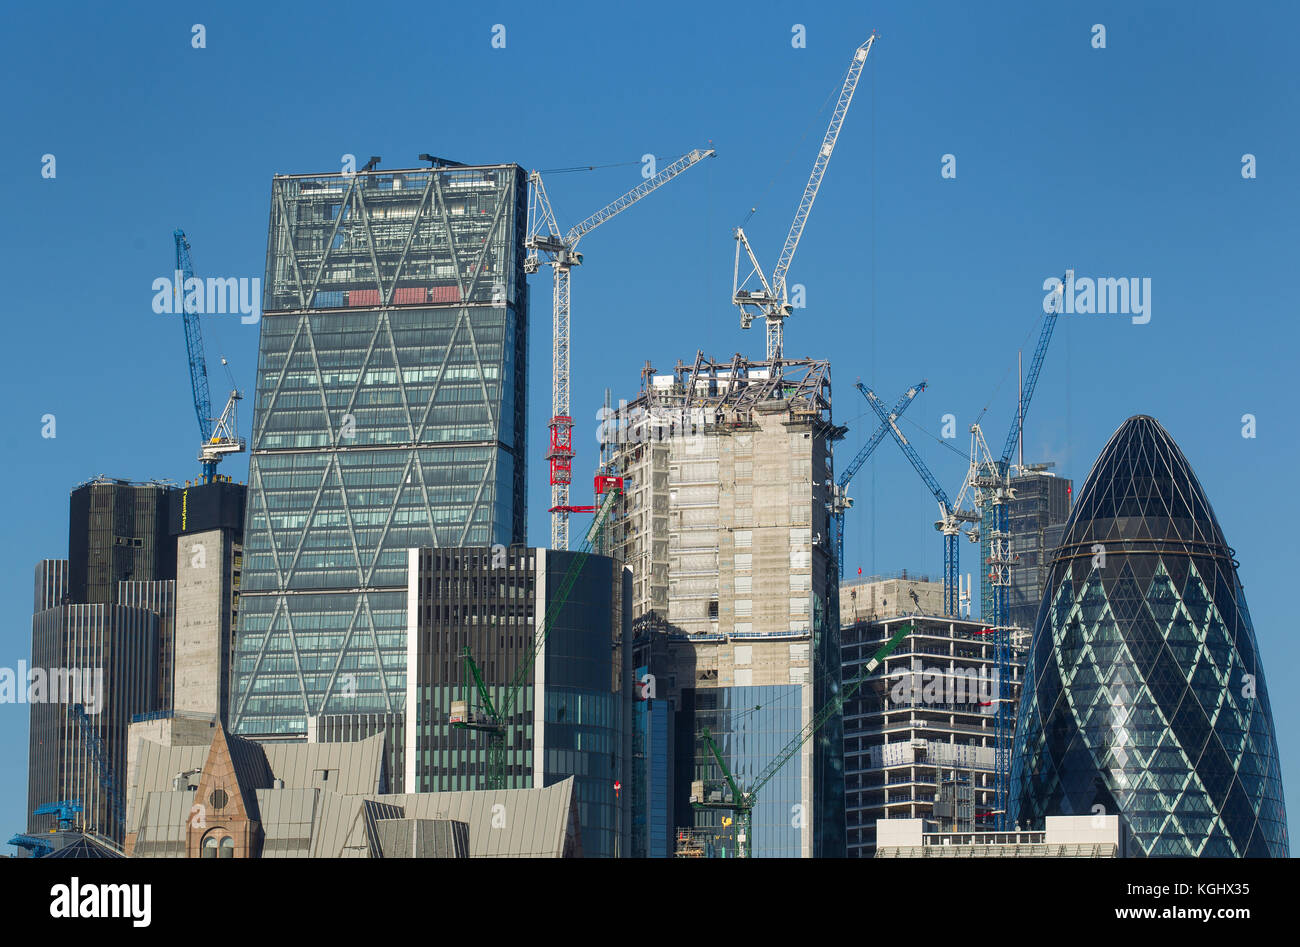 London city skyline seen from the river thames as cranes work on new buildings in the square mile - Stock Image